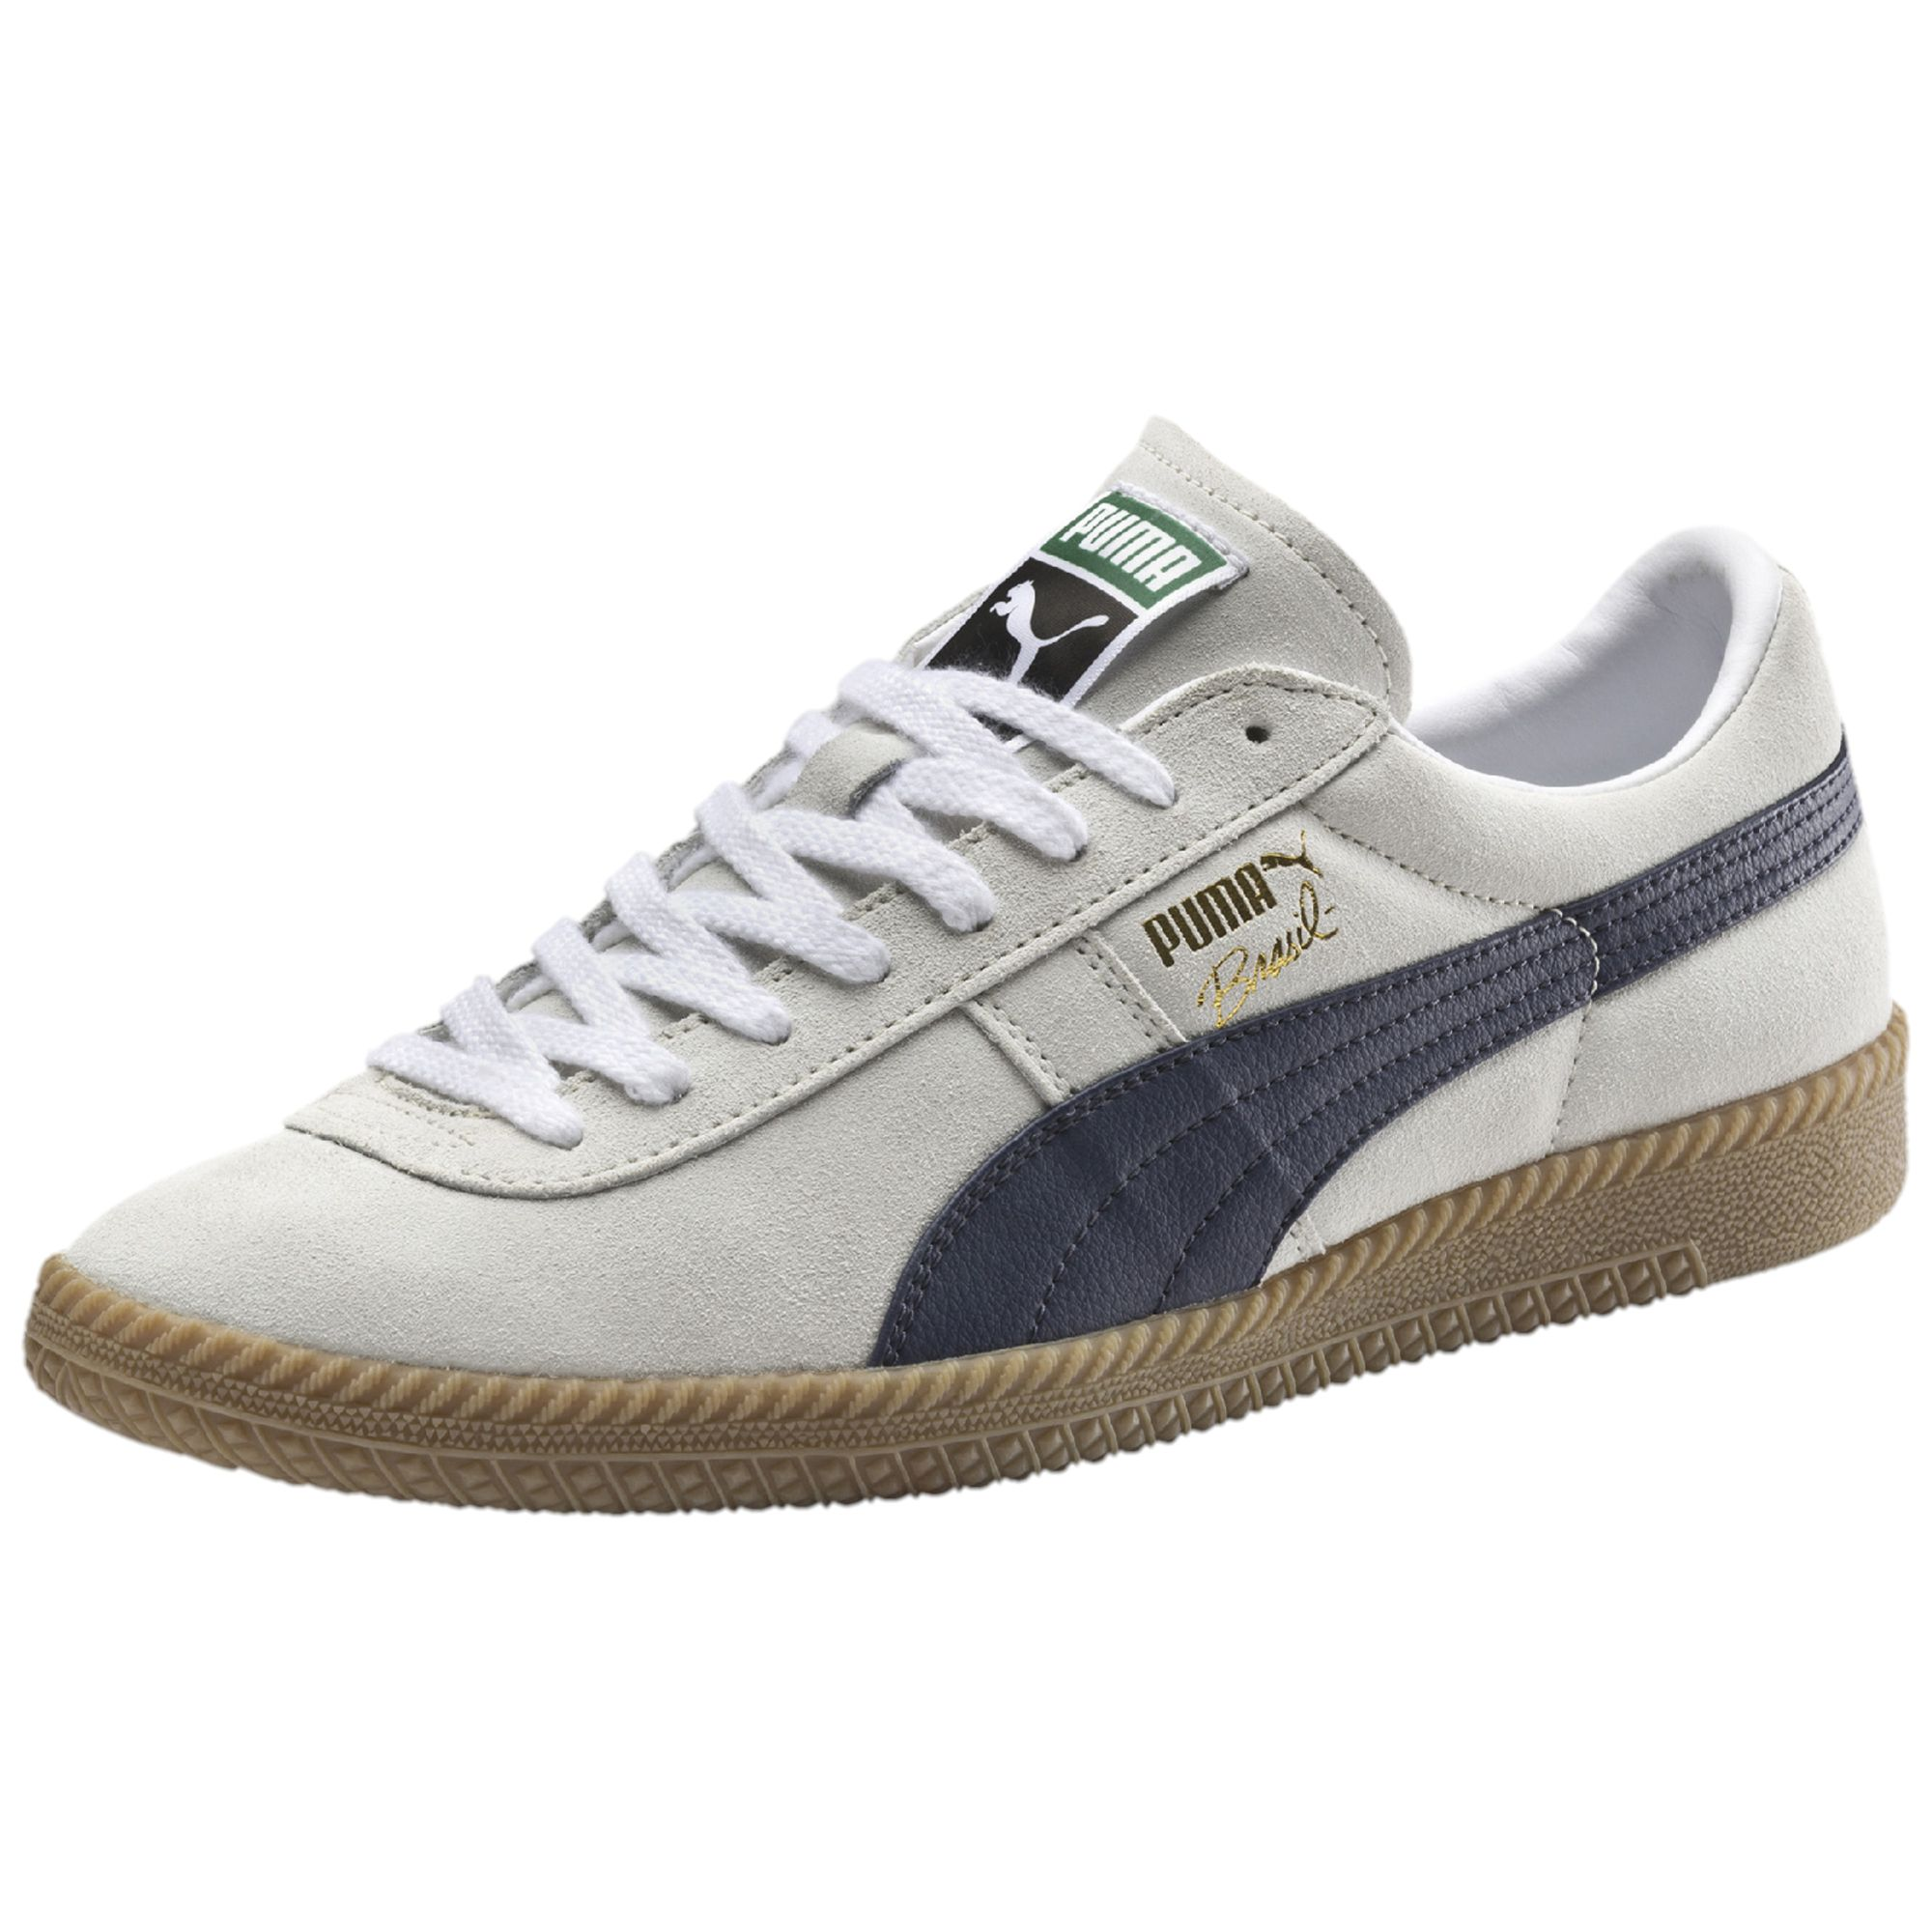 puma brasil vintage football sneaker schuhe fussball. Black Bedroom Furniture Sets. Home Design Ideas